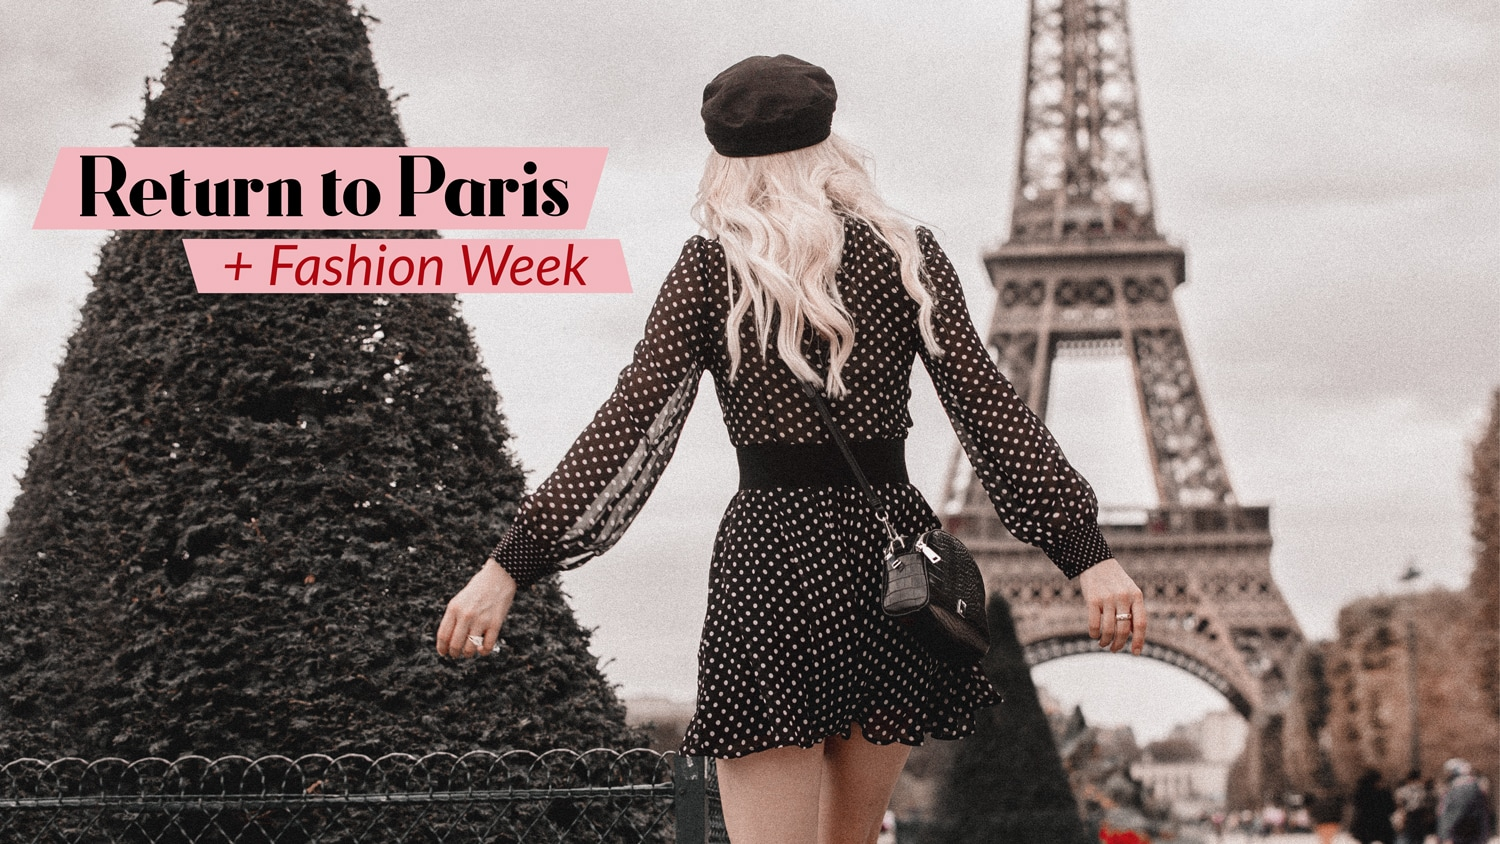 Buy Sell Can you get tickets to paris fashion week